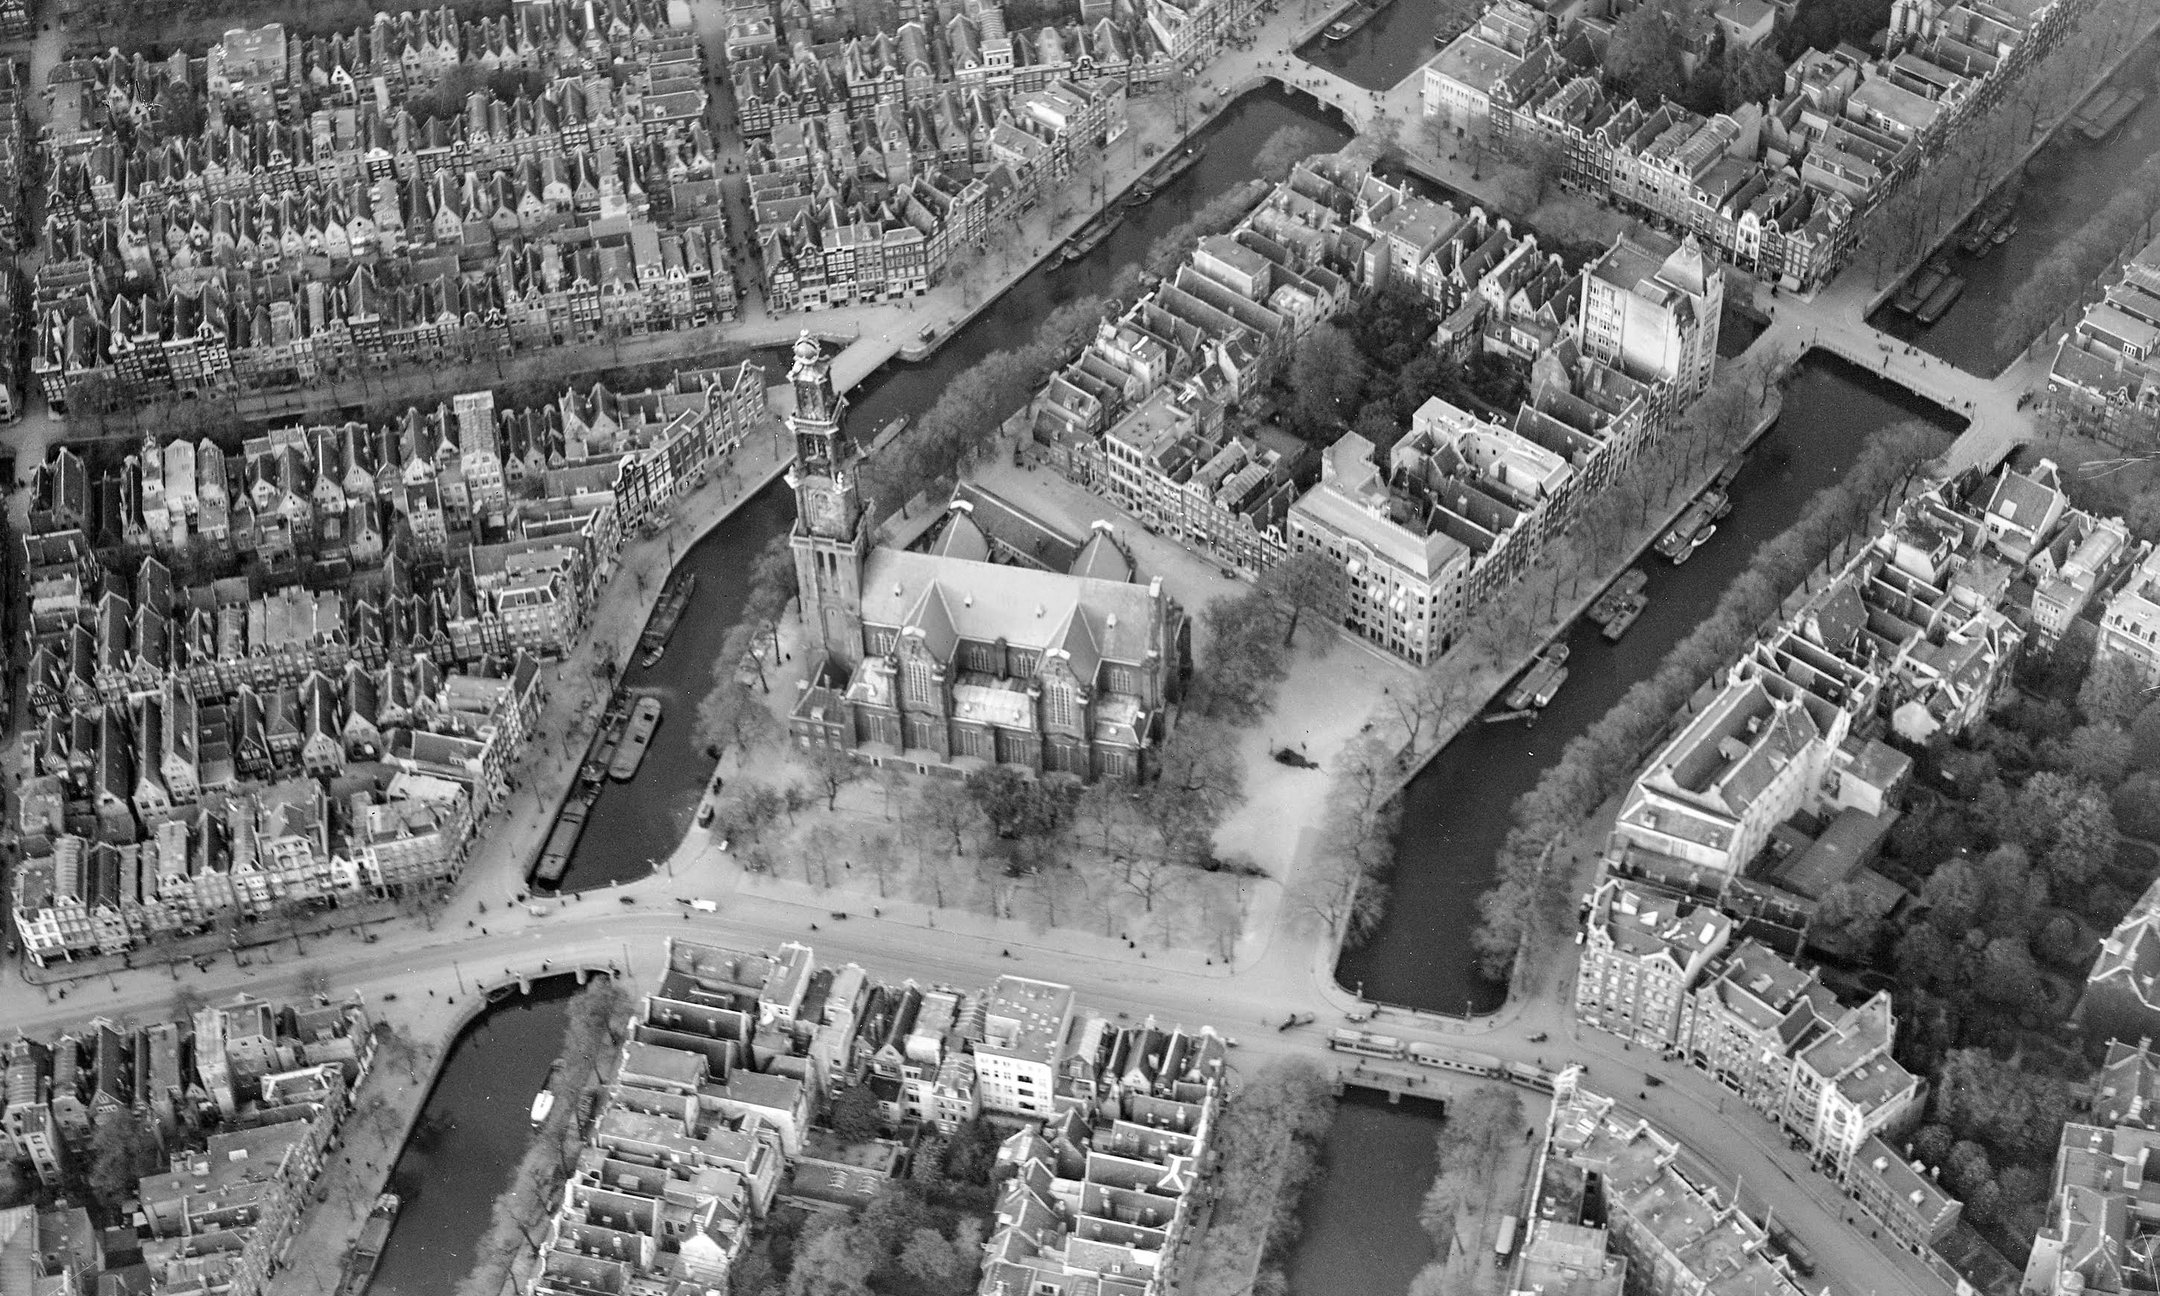 Aerial photo of Amsterdam. The tower of the Westerkerk is in the centre. Prinsengracht 263 is in the block above the tower, next to the canal.